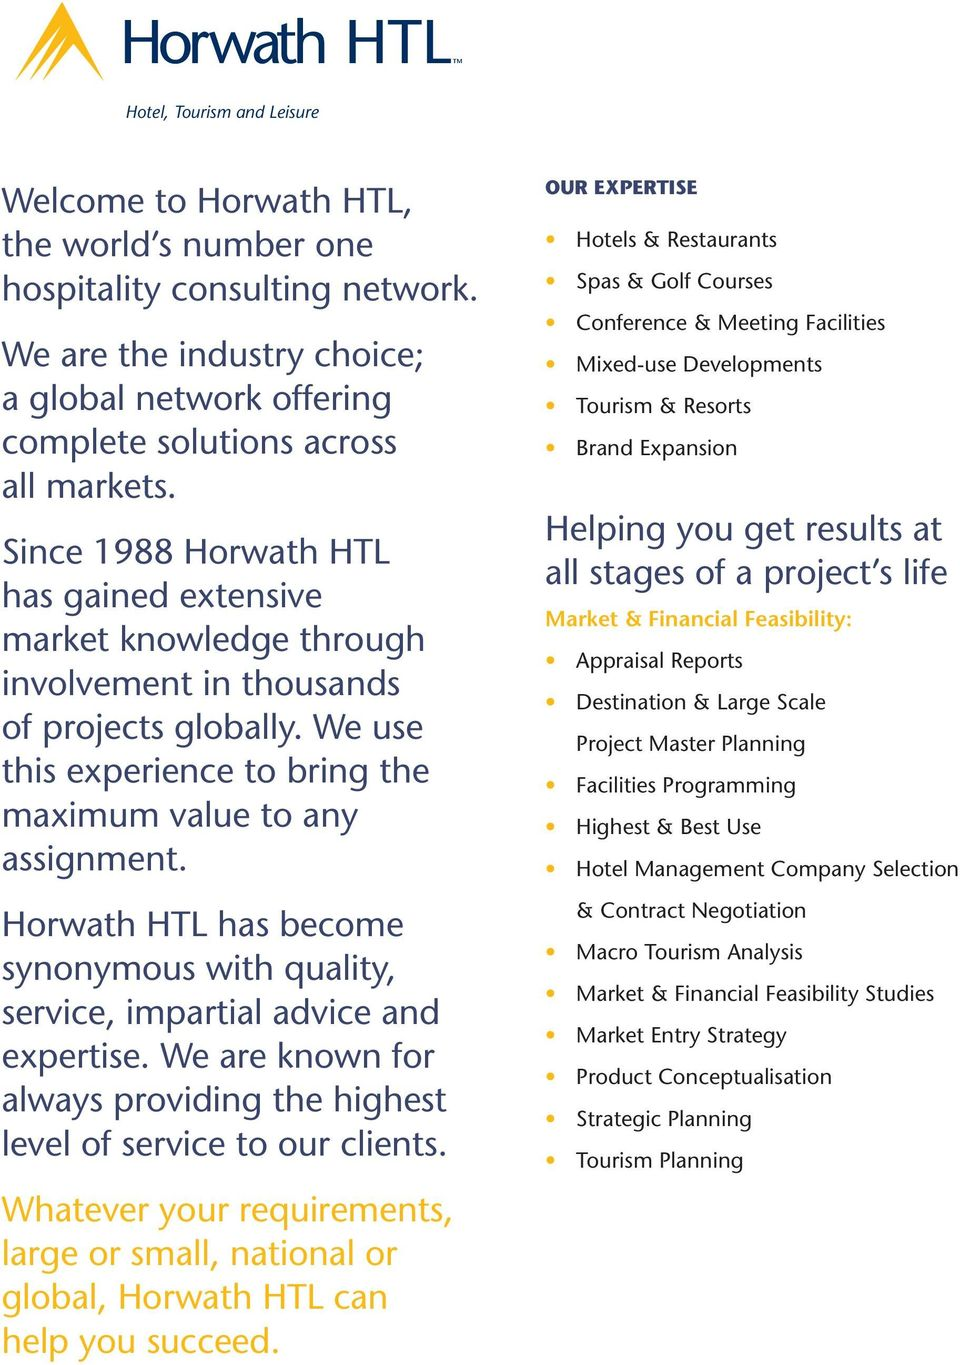 Since 1988 Horwath HTL has gained extensive market knowledge through involvement in thousands of projects globally. We use this experience to bring the maximum value to any assignment.